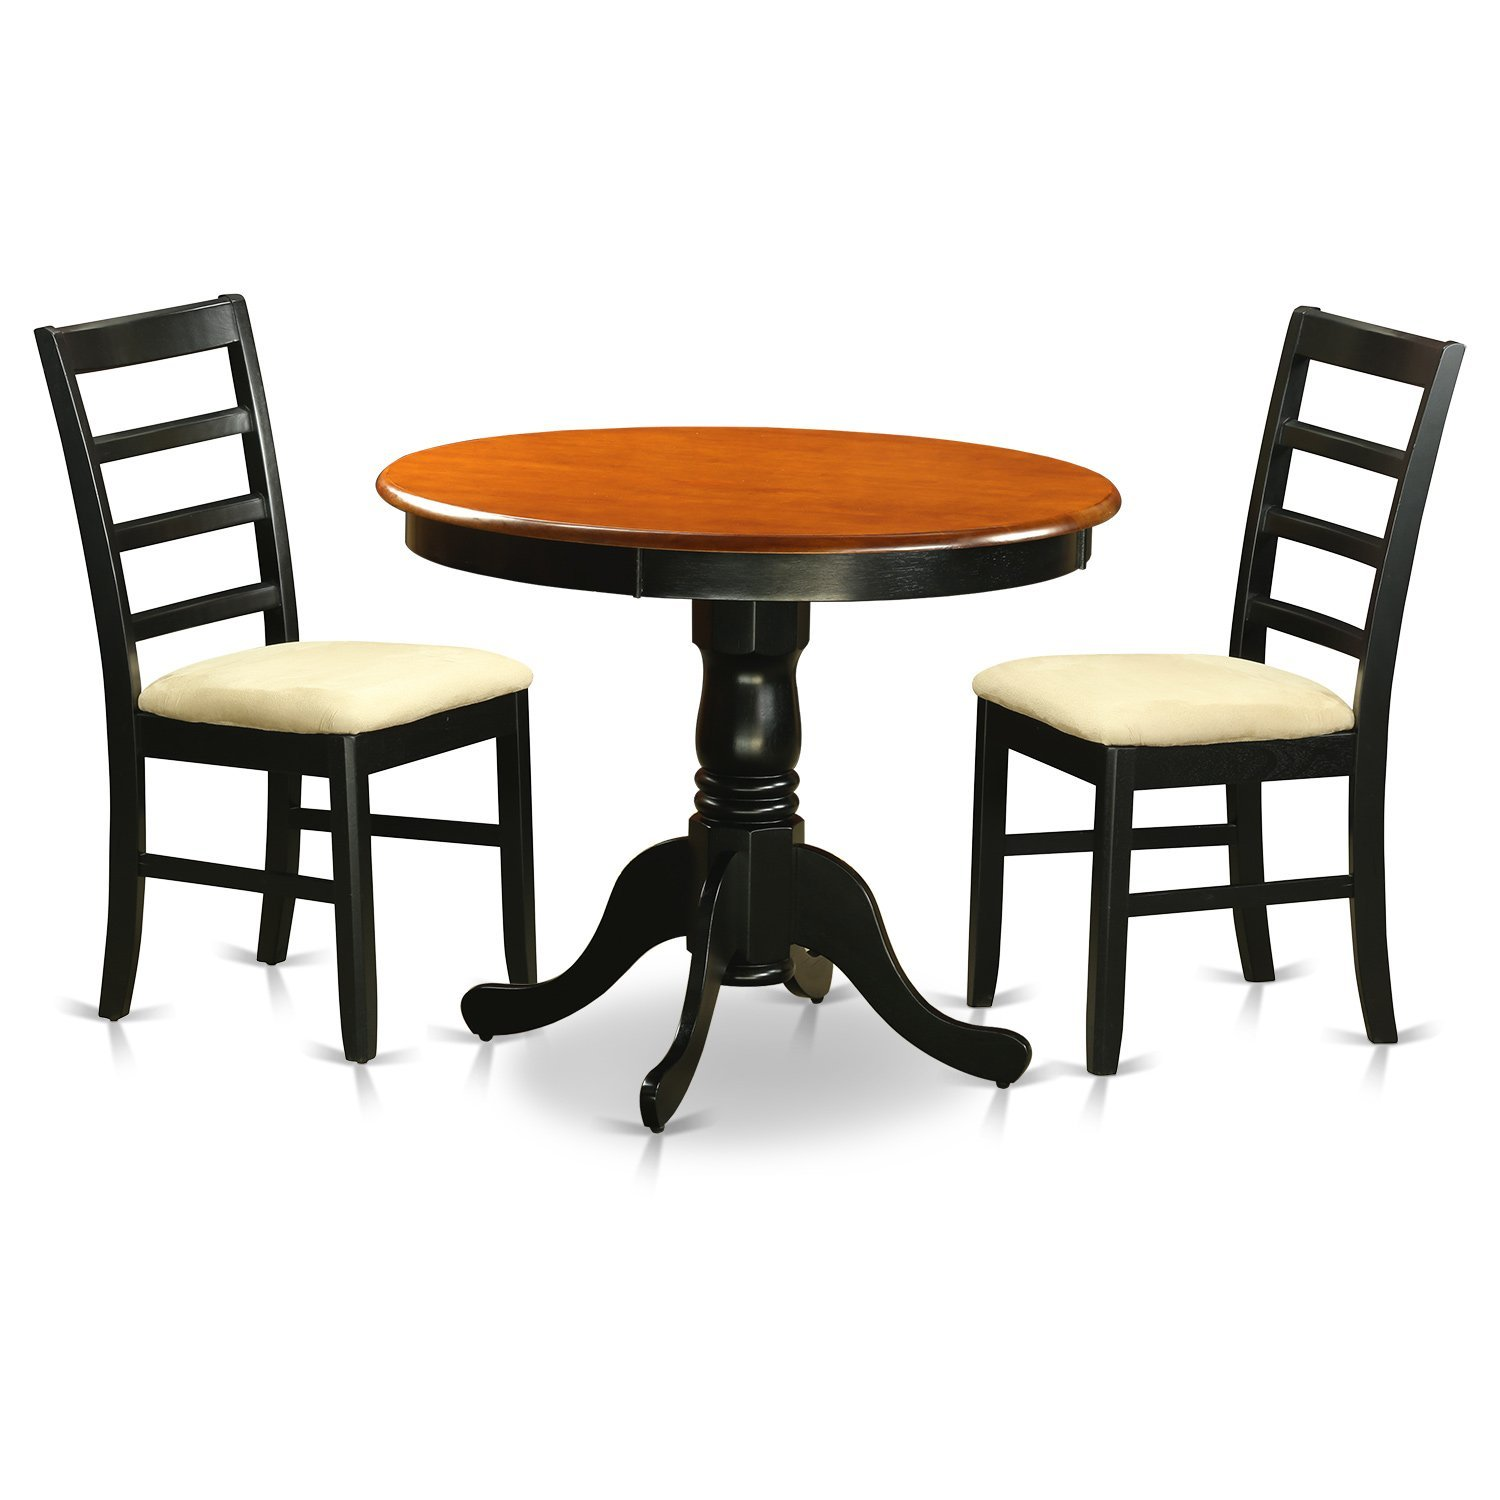 East West Furniture ANPF3-BLK-C 3 Piece with 2 Microfiber Chairs Antique Dining Set, Black/Cherry Finish